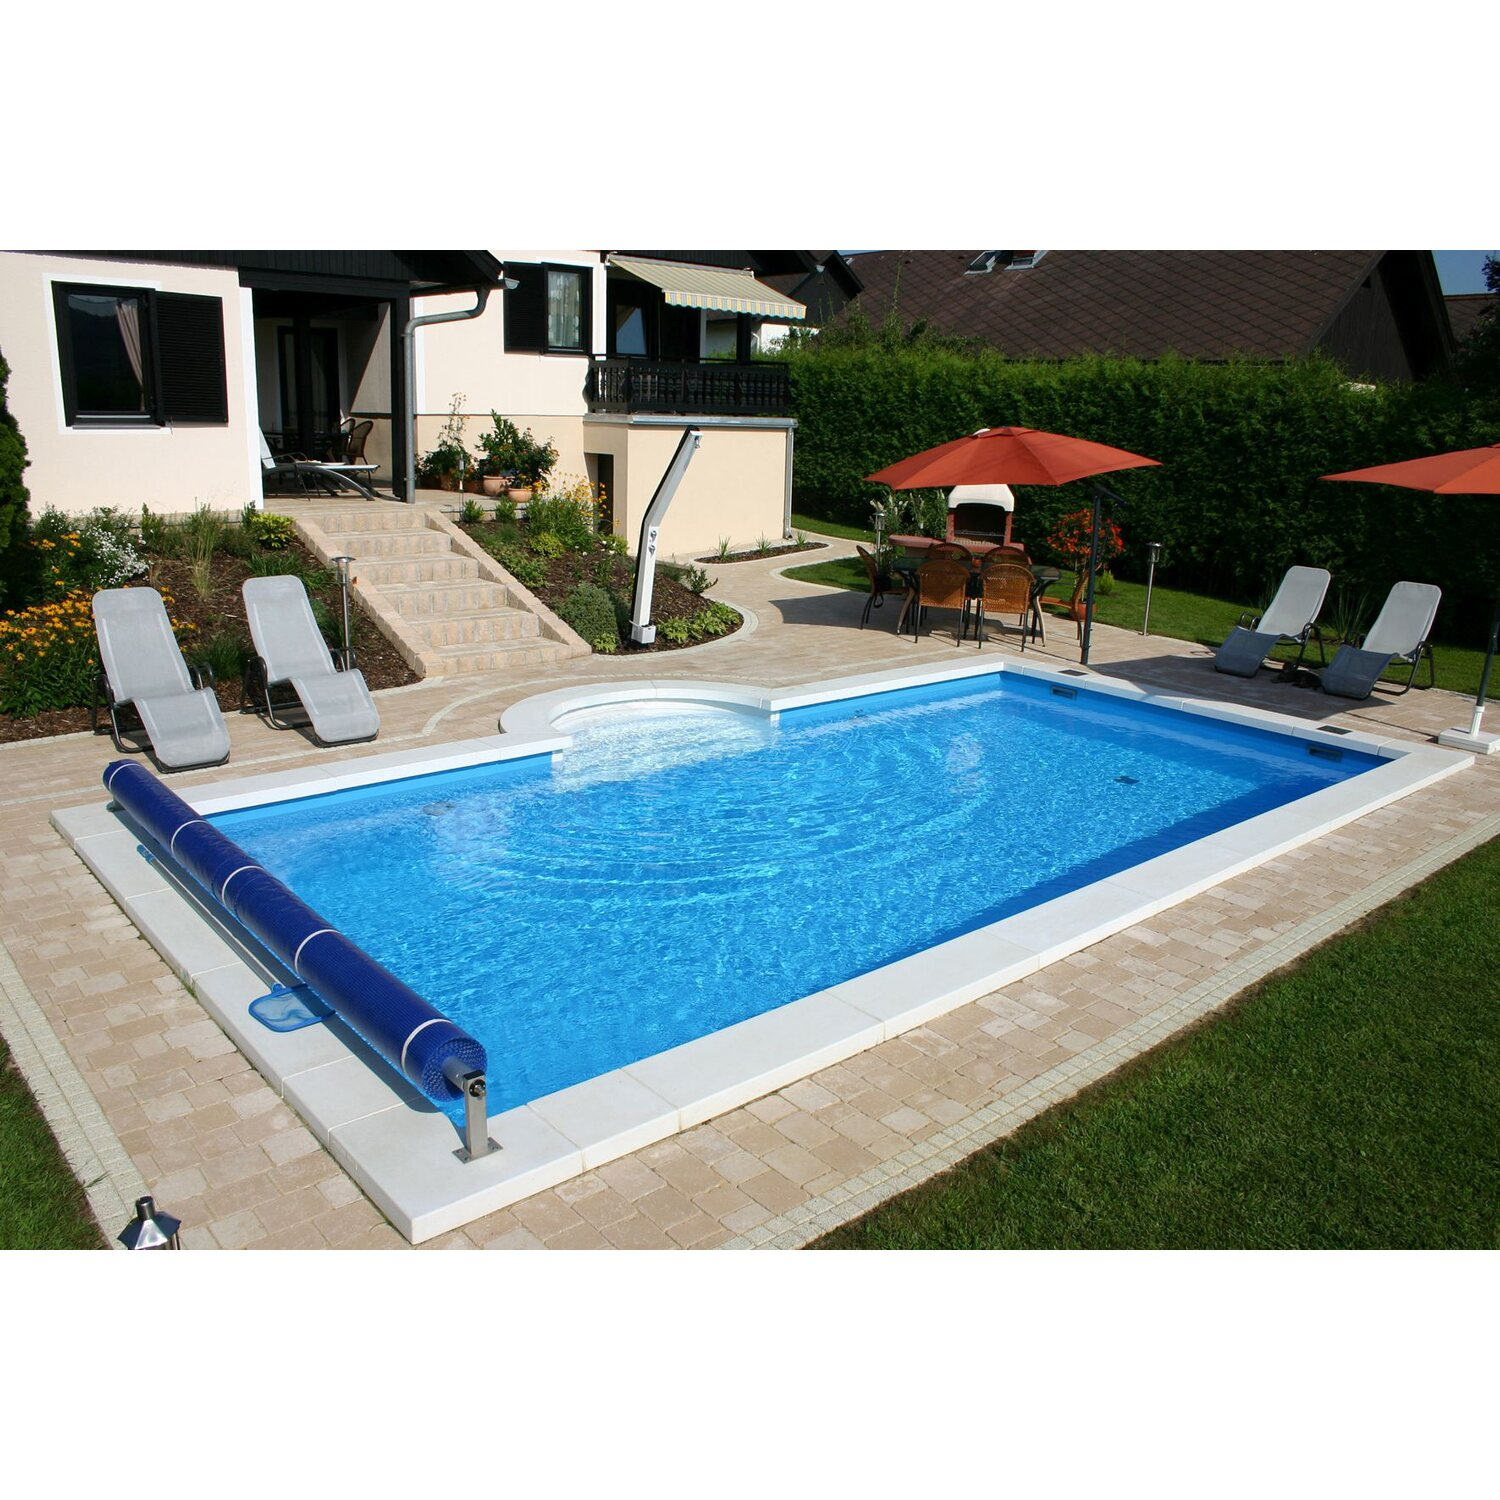 Summer fun styropor pool set lugano einbaubecken 700 cm x for Poolumrandung aufstellpool